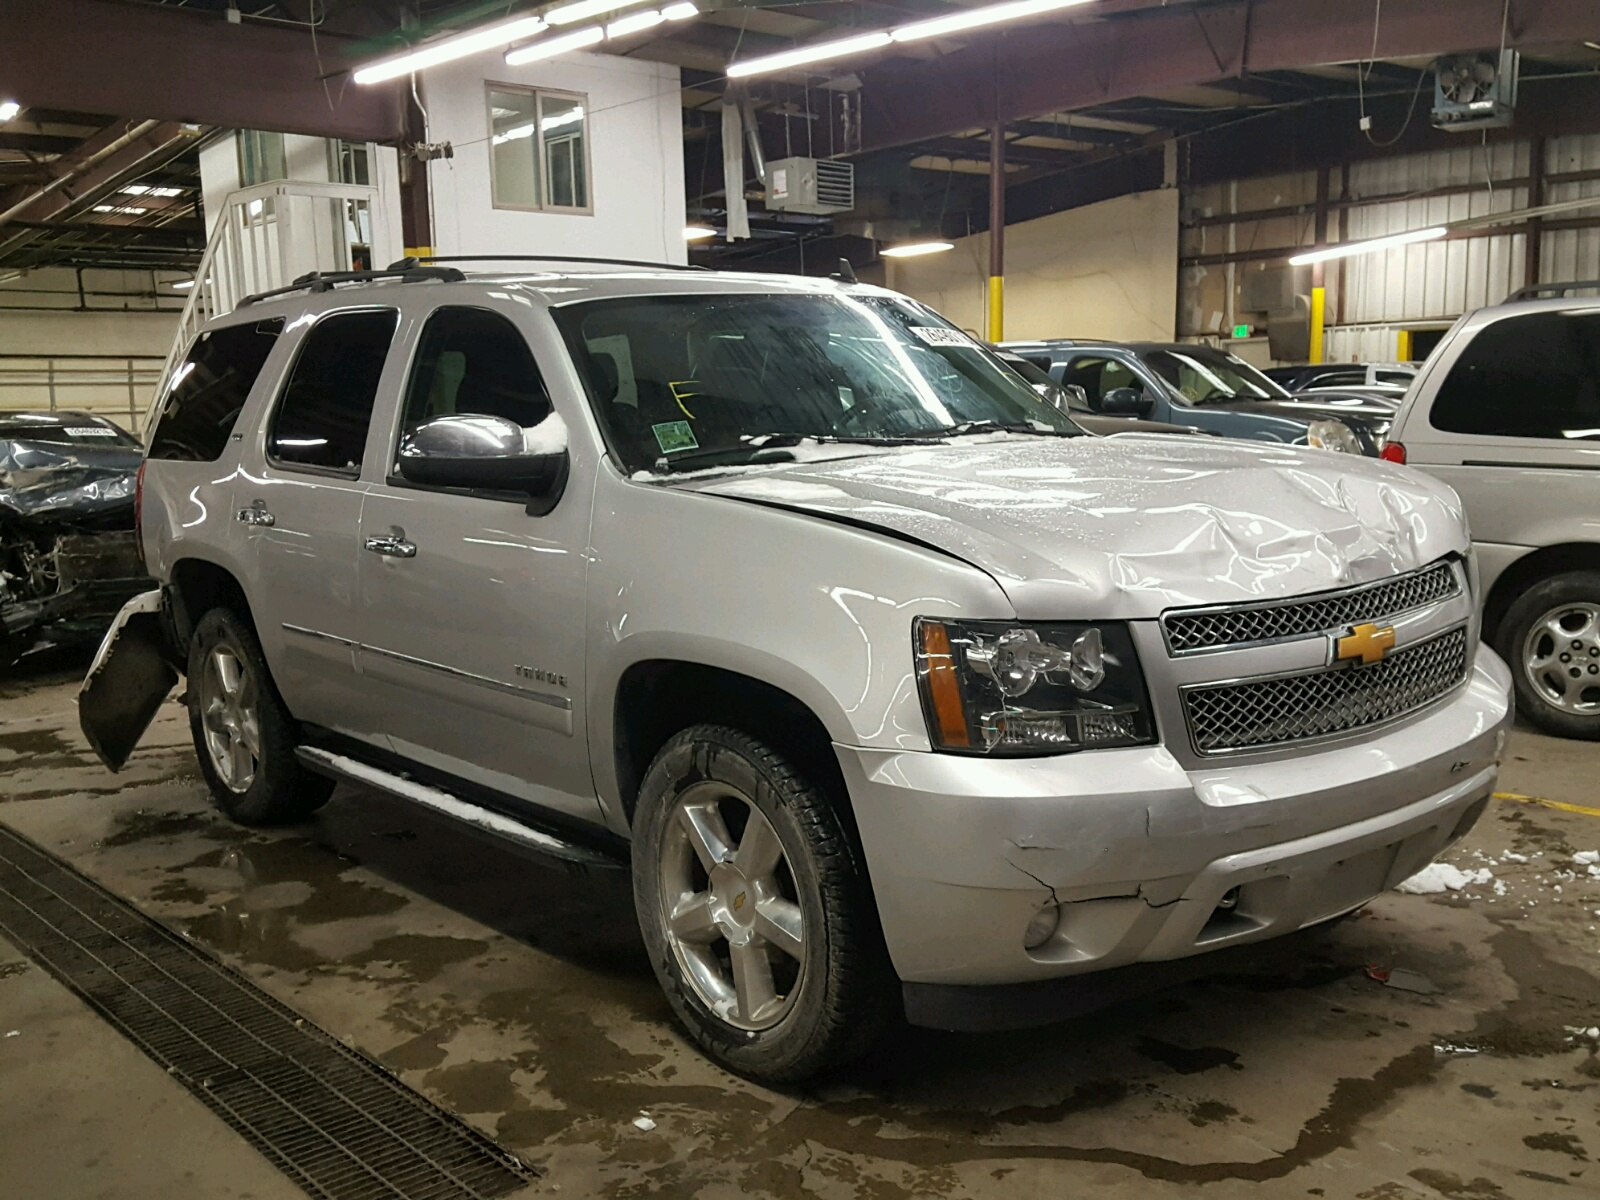 window januar suv chevrolet auction tahoe sold in new item full size police